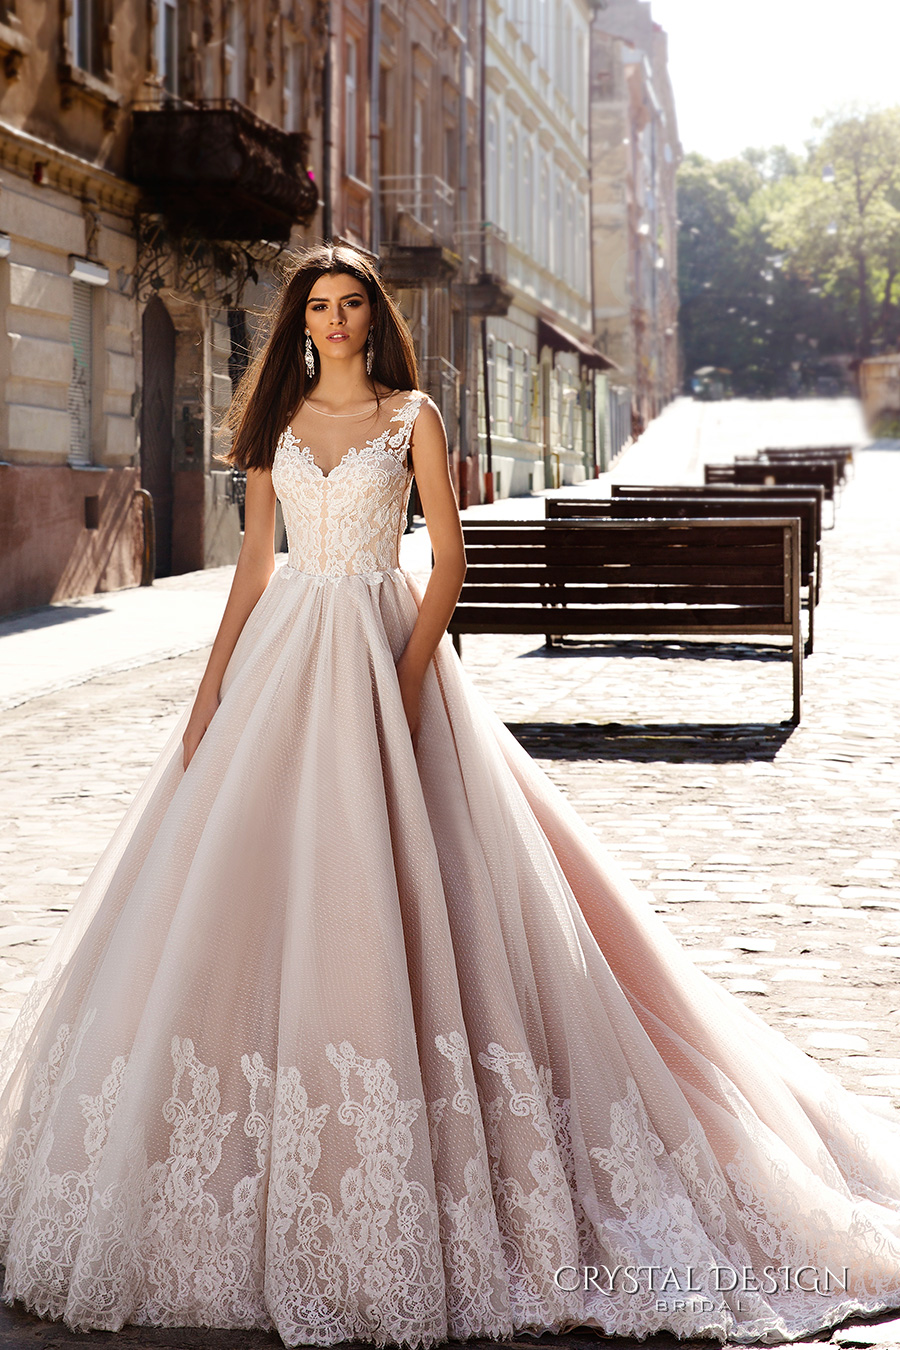 crystal design bridal 2016 sleeveless illusion round neckline v neck lace embellished bodice gorgeous princess ball gown wedding dress chapel train (avrora) mv